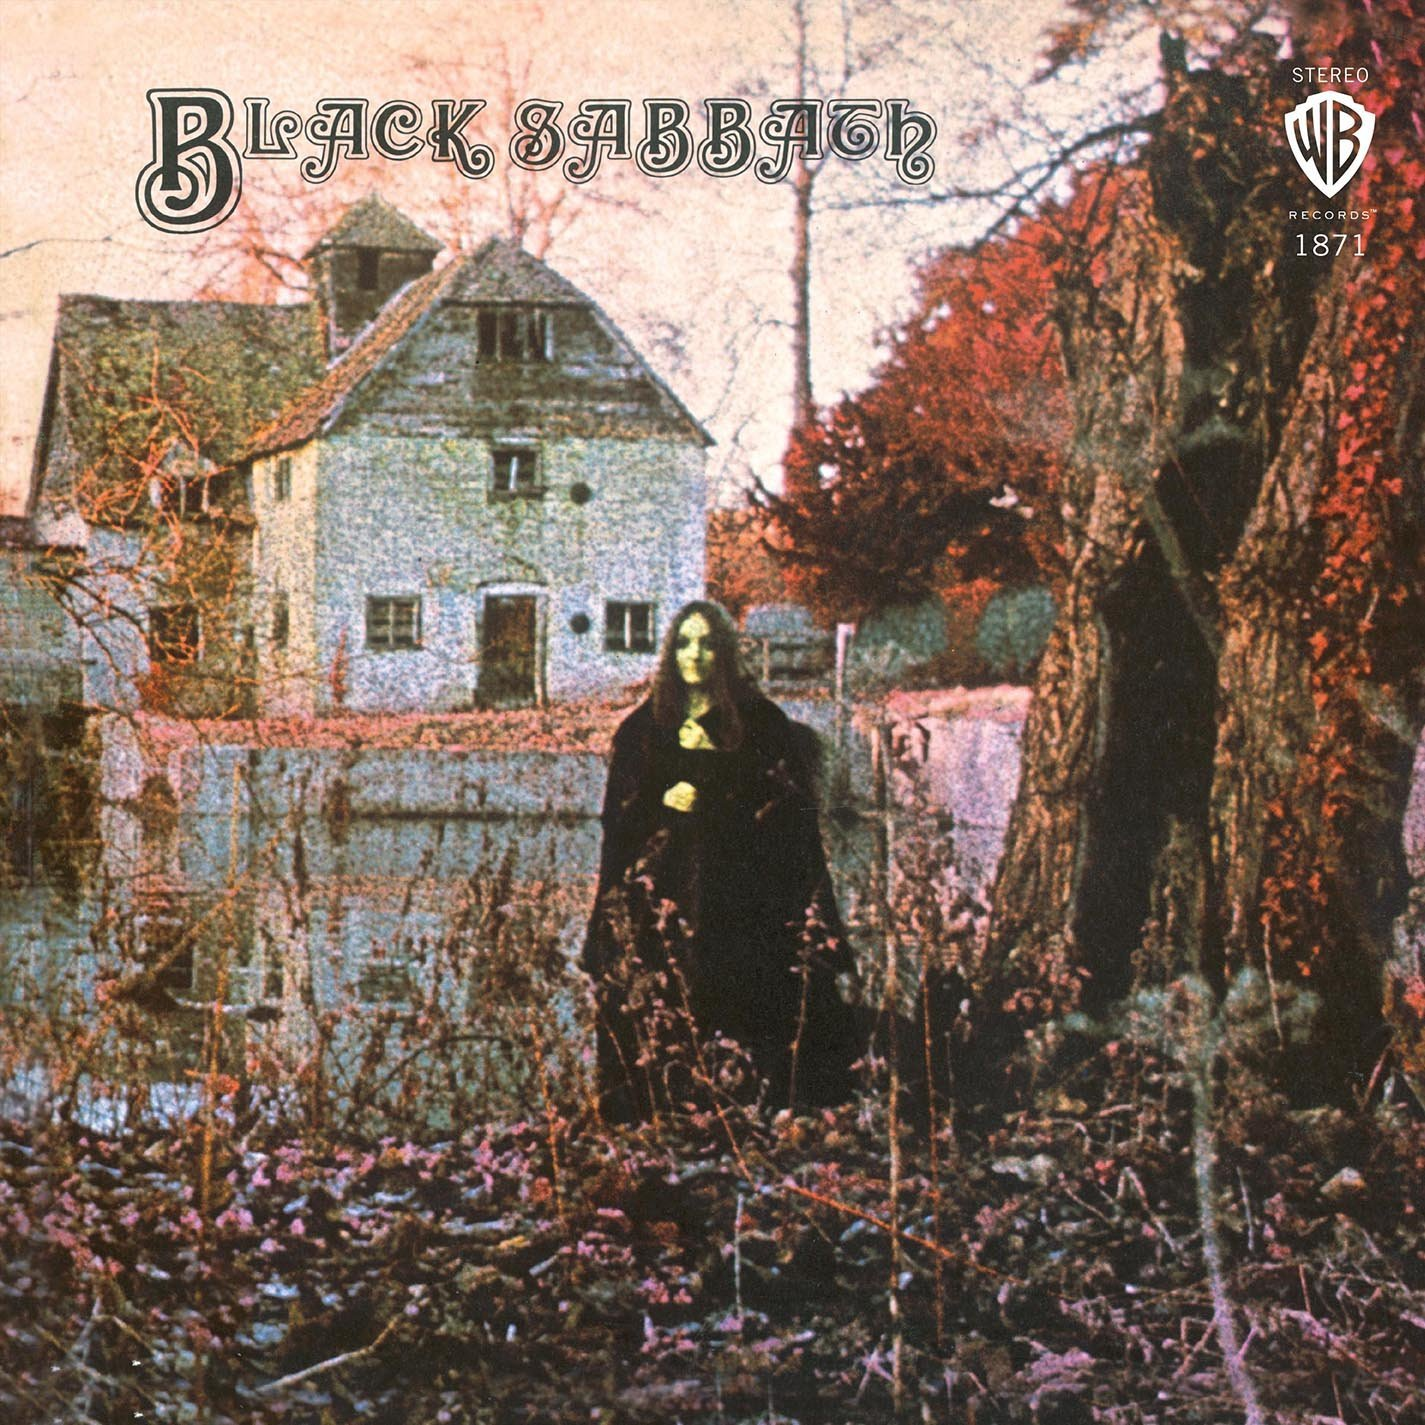 black sabbath The 25 Greatest Debut Metal Albums of All Time